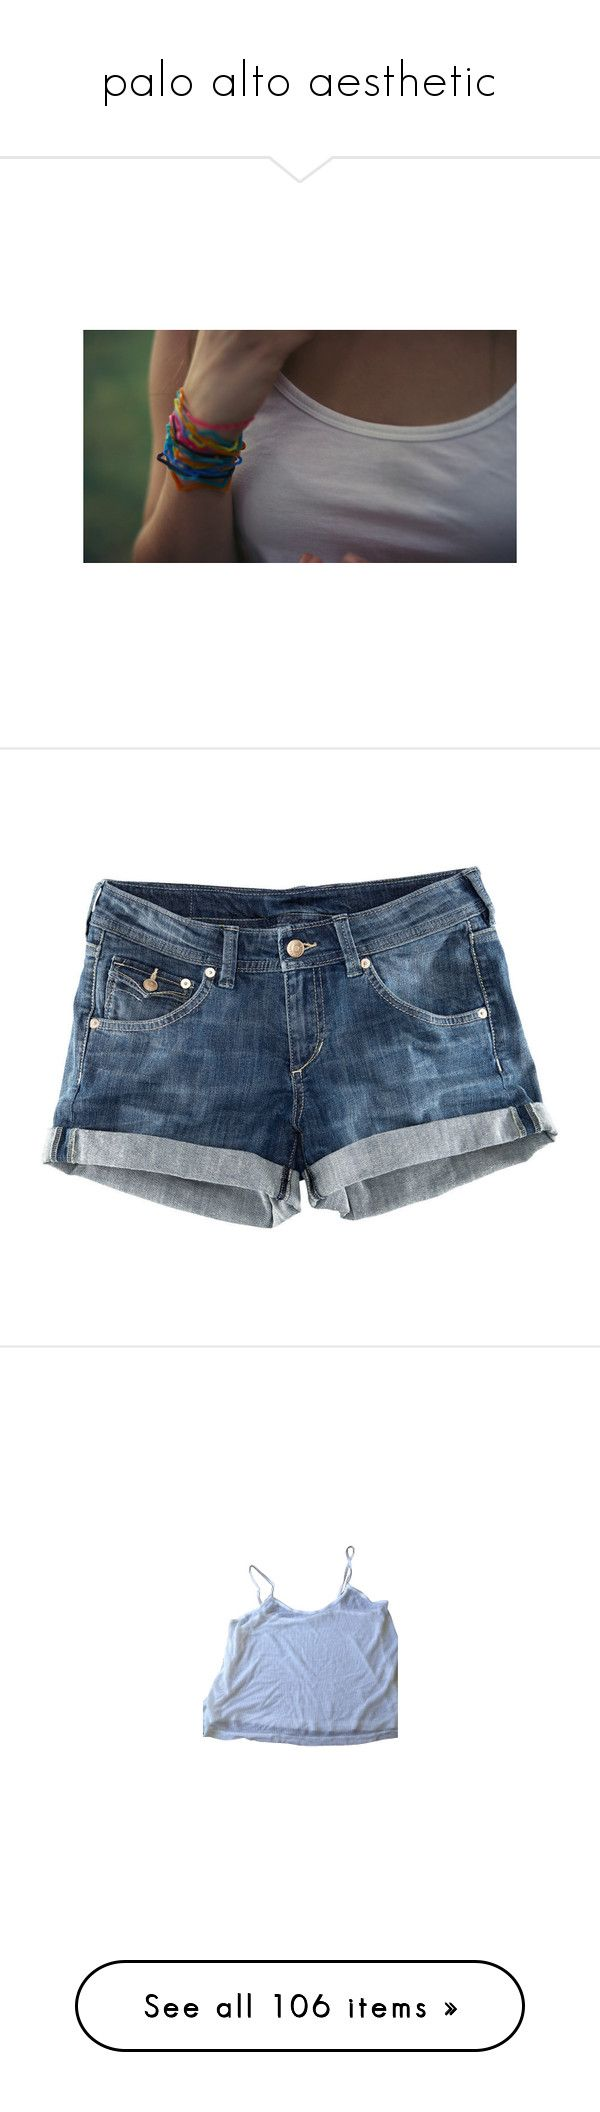 """""""palo alto aesthetic"""" by nymphyt ❤ liked on Polyvore featuring shorts, bottoms, pants, short, h&m shorts, low rise short shorts, low rise jean shorts, low rise shorts, short jean shorts and tops"""